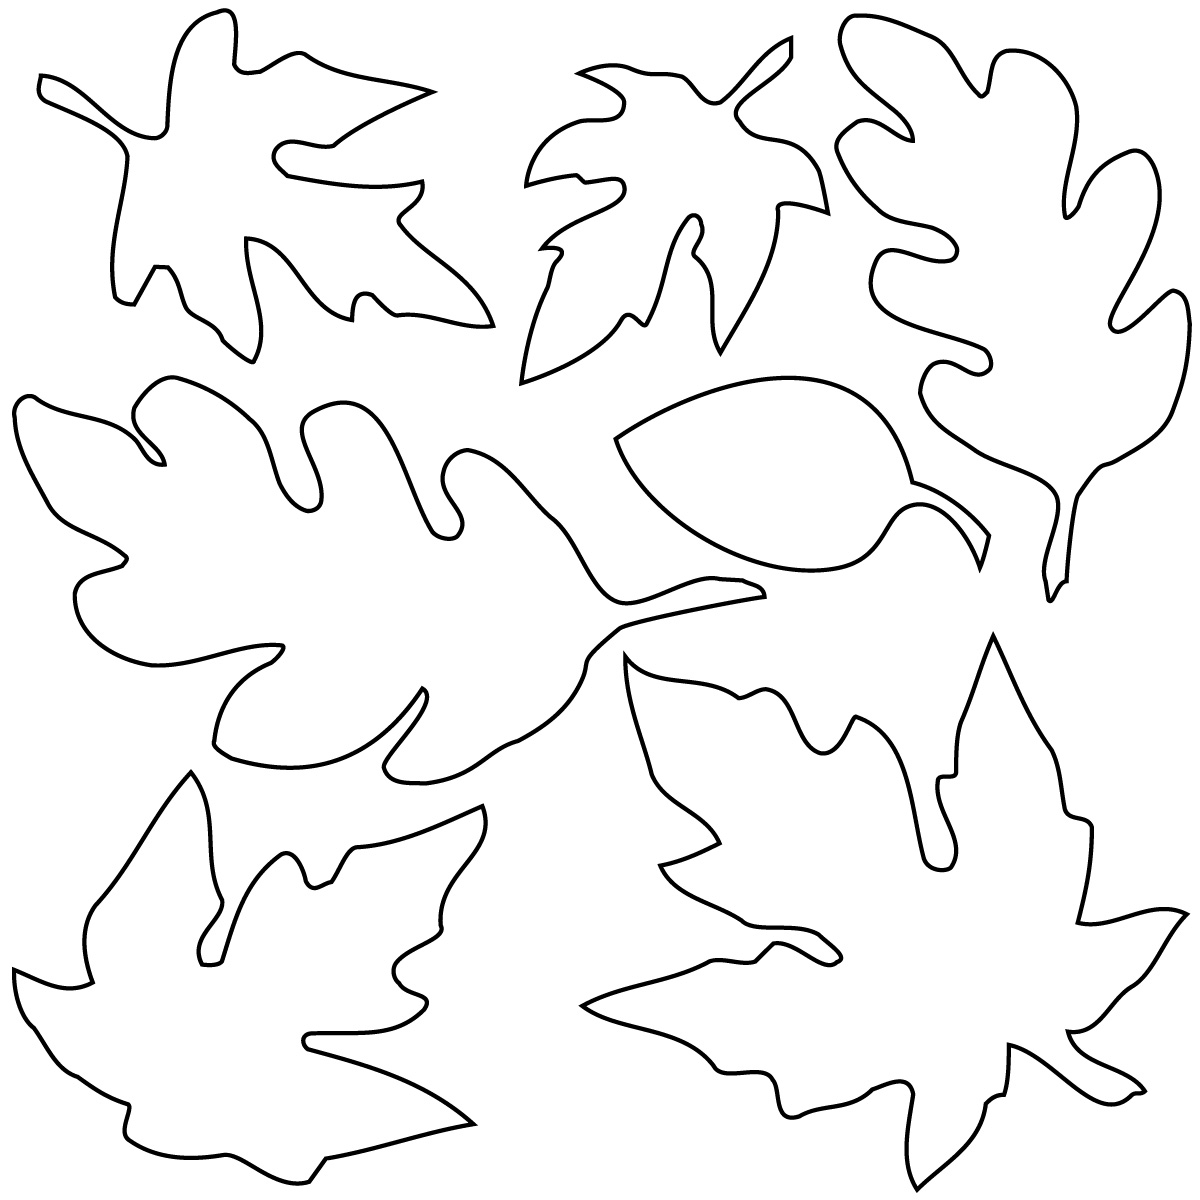 Coloring Pages - Free Fall Leaf Pages for Kids to Color - School